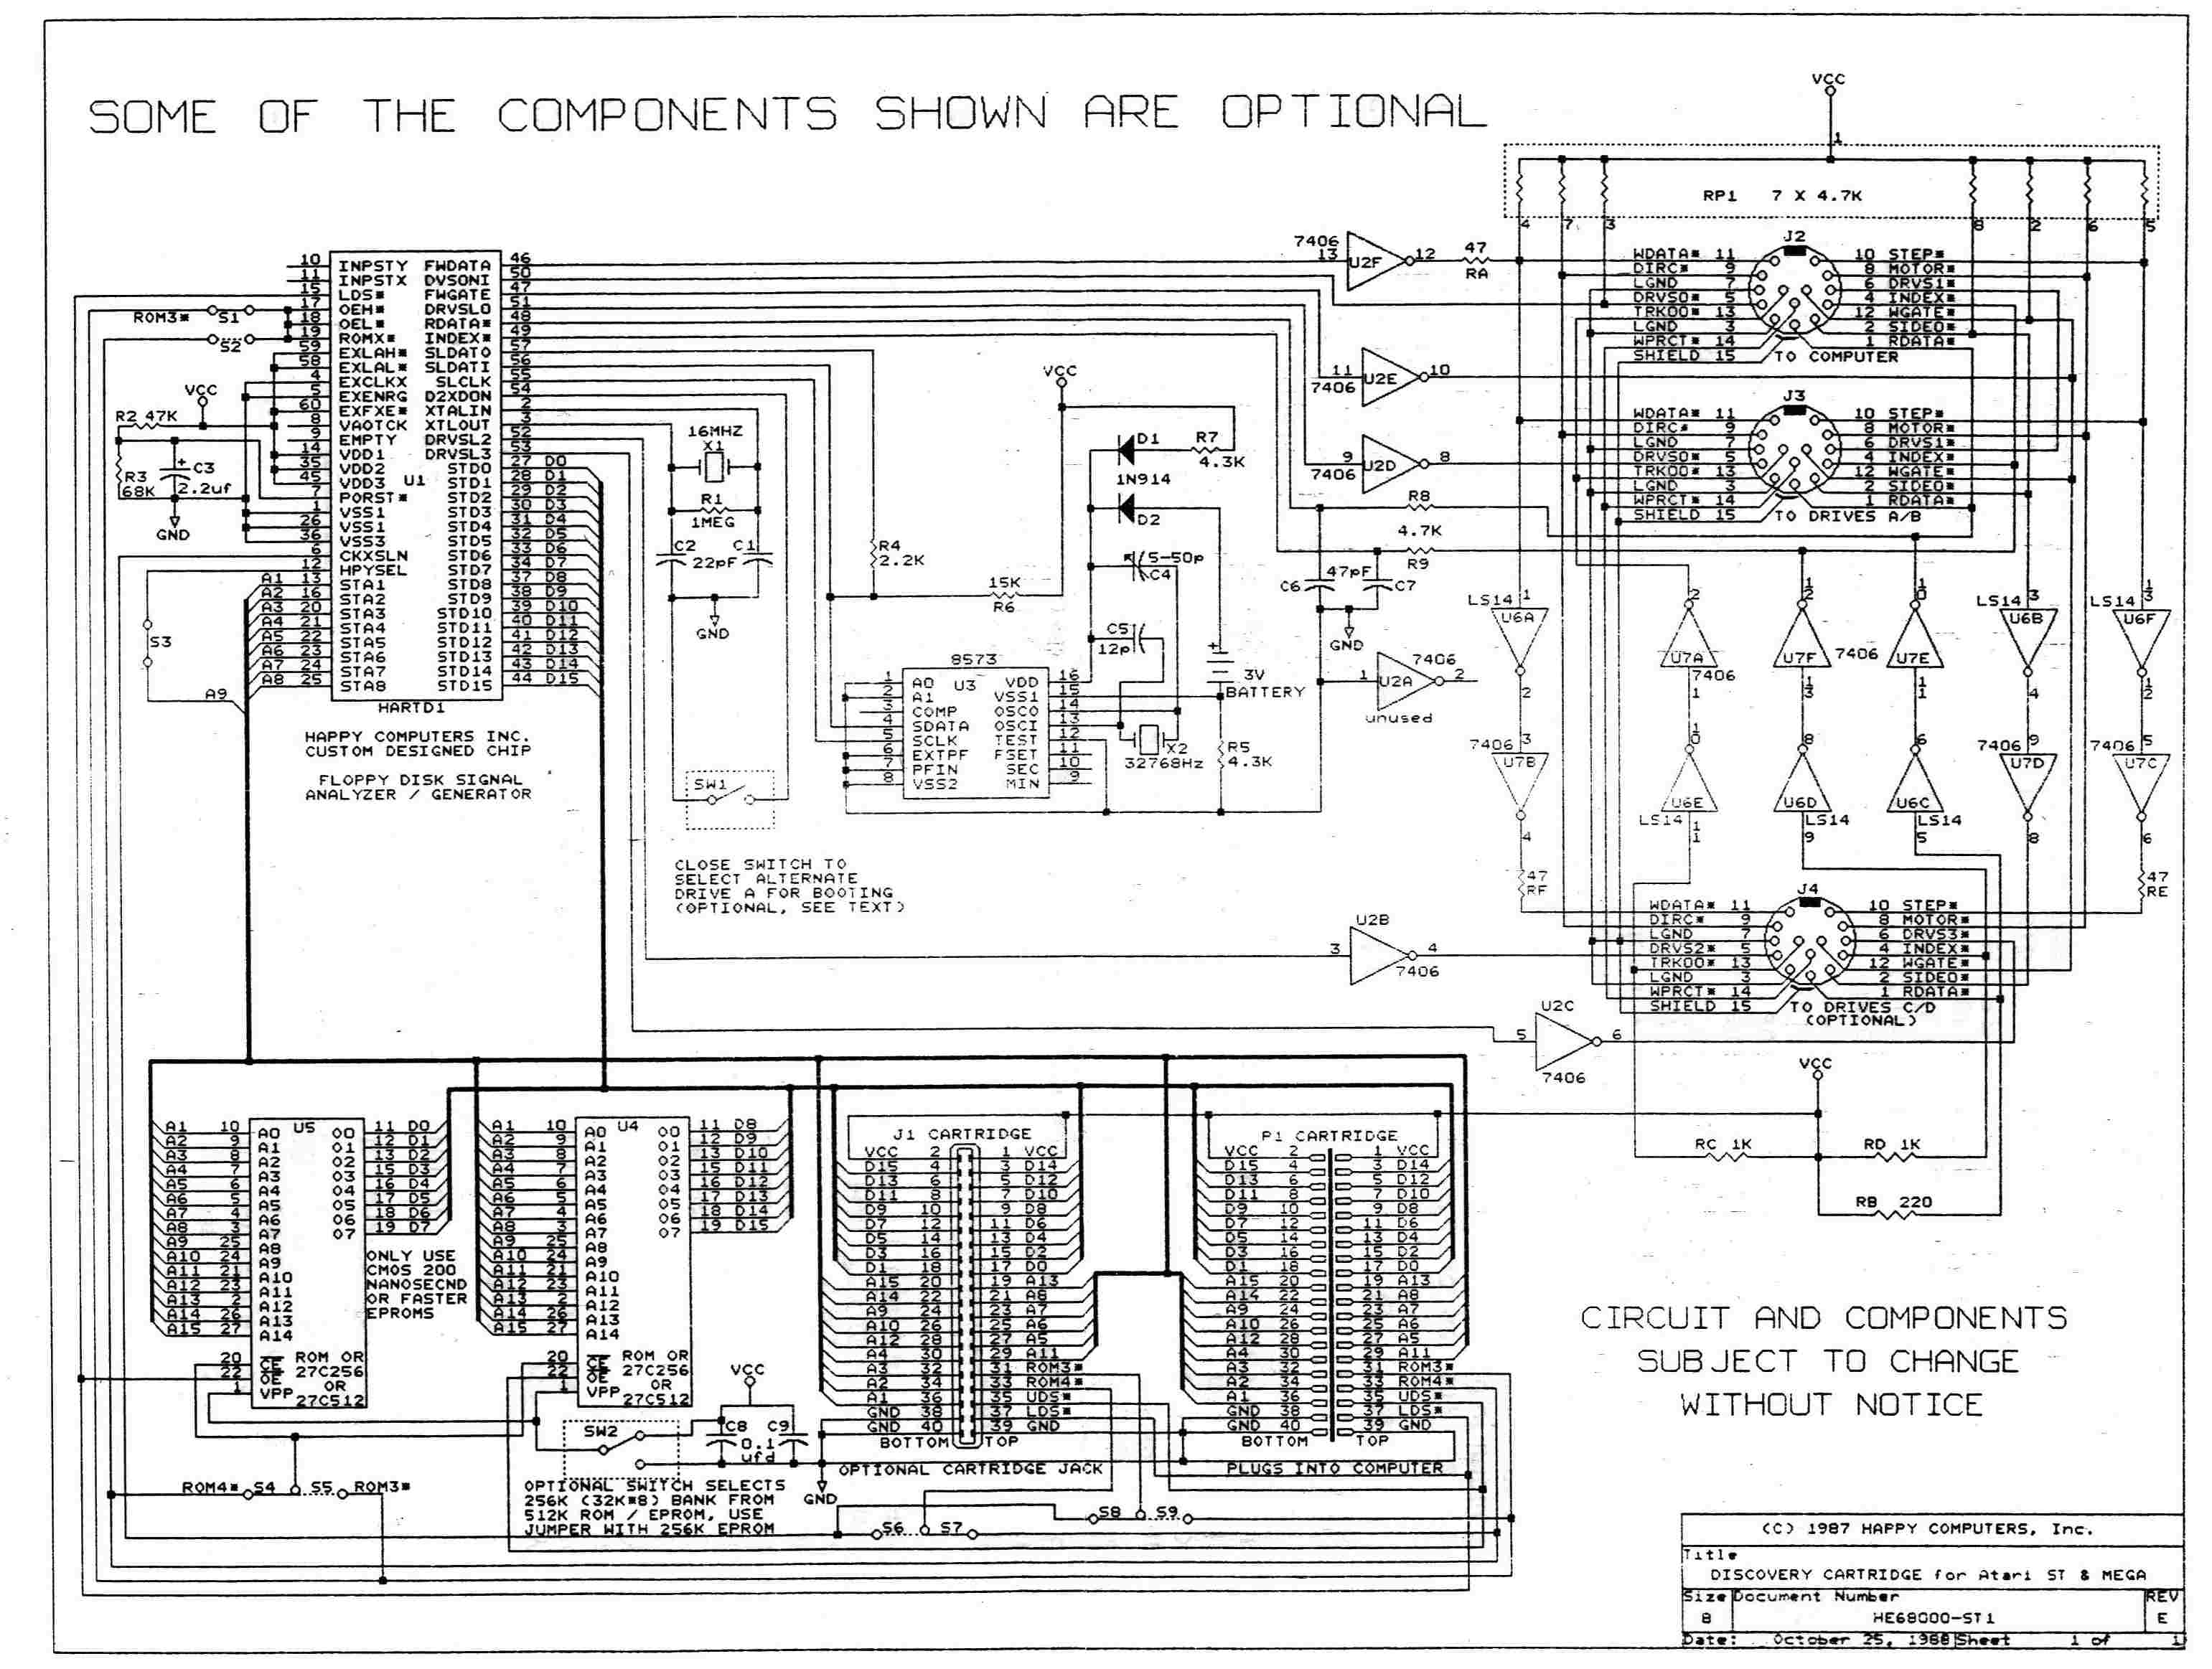 Atari Wiring Diagram Custom Schematic Whirlpool Lfe5800wo Rh Patrickpowell Co 3 Way Switch Simple